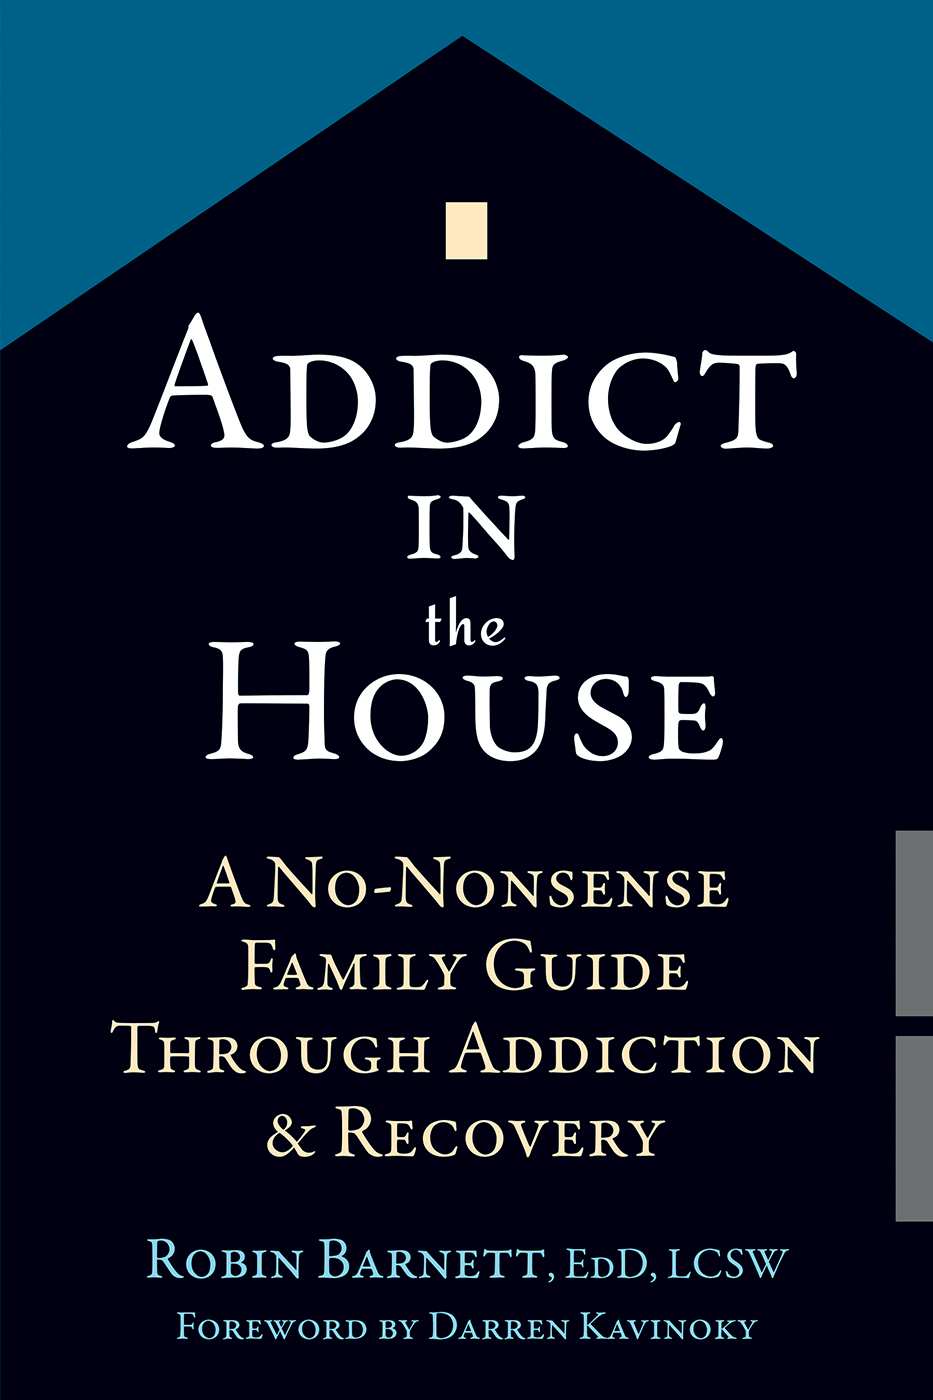 Addict in the House A No-Nonsense Family Guide Through Addiction and Recovery